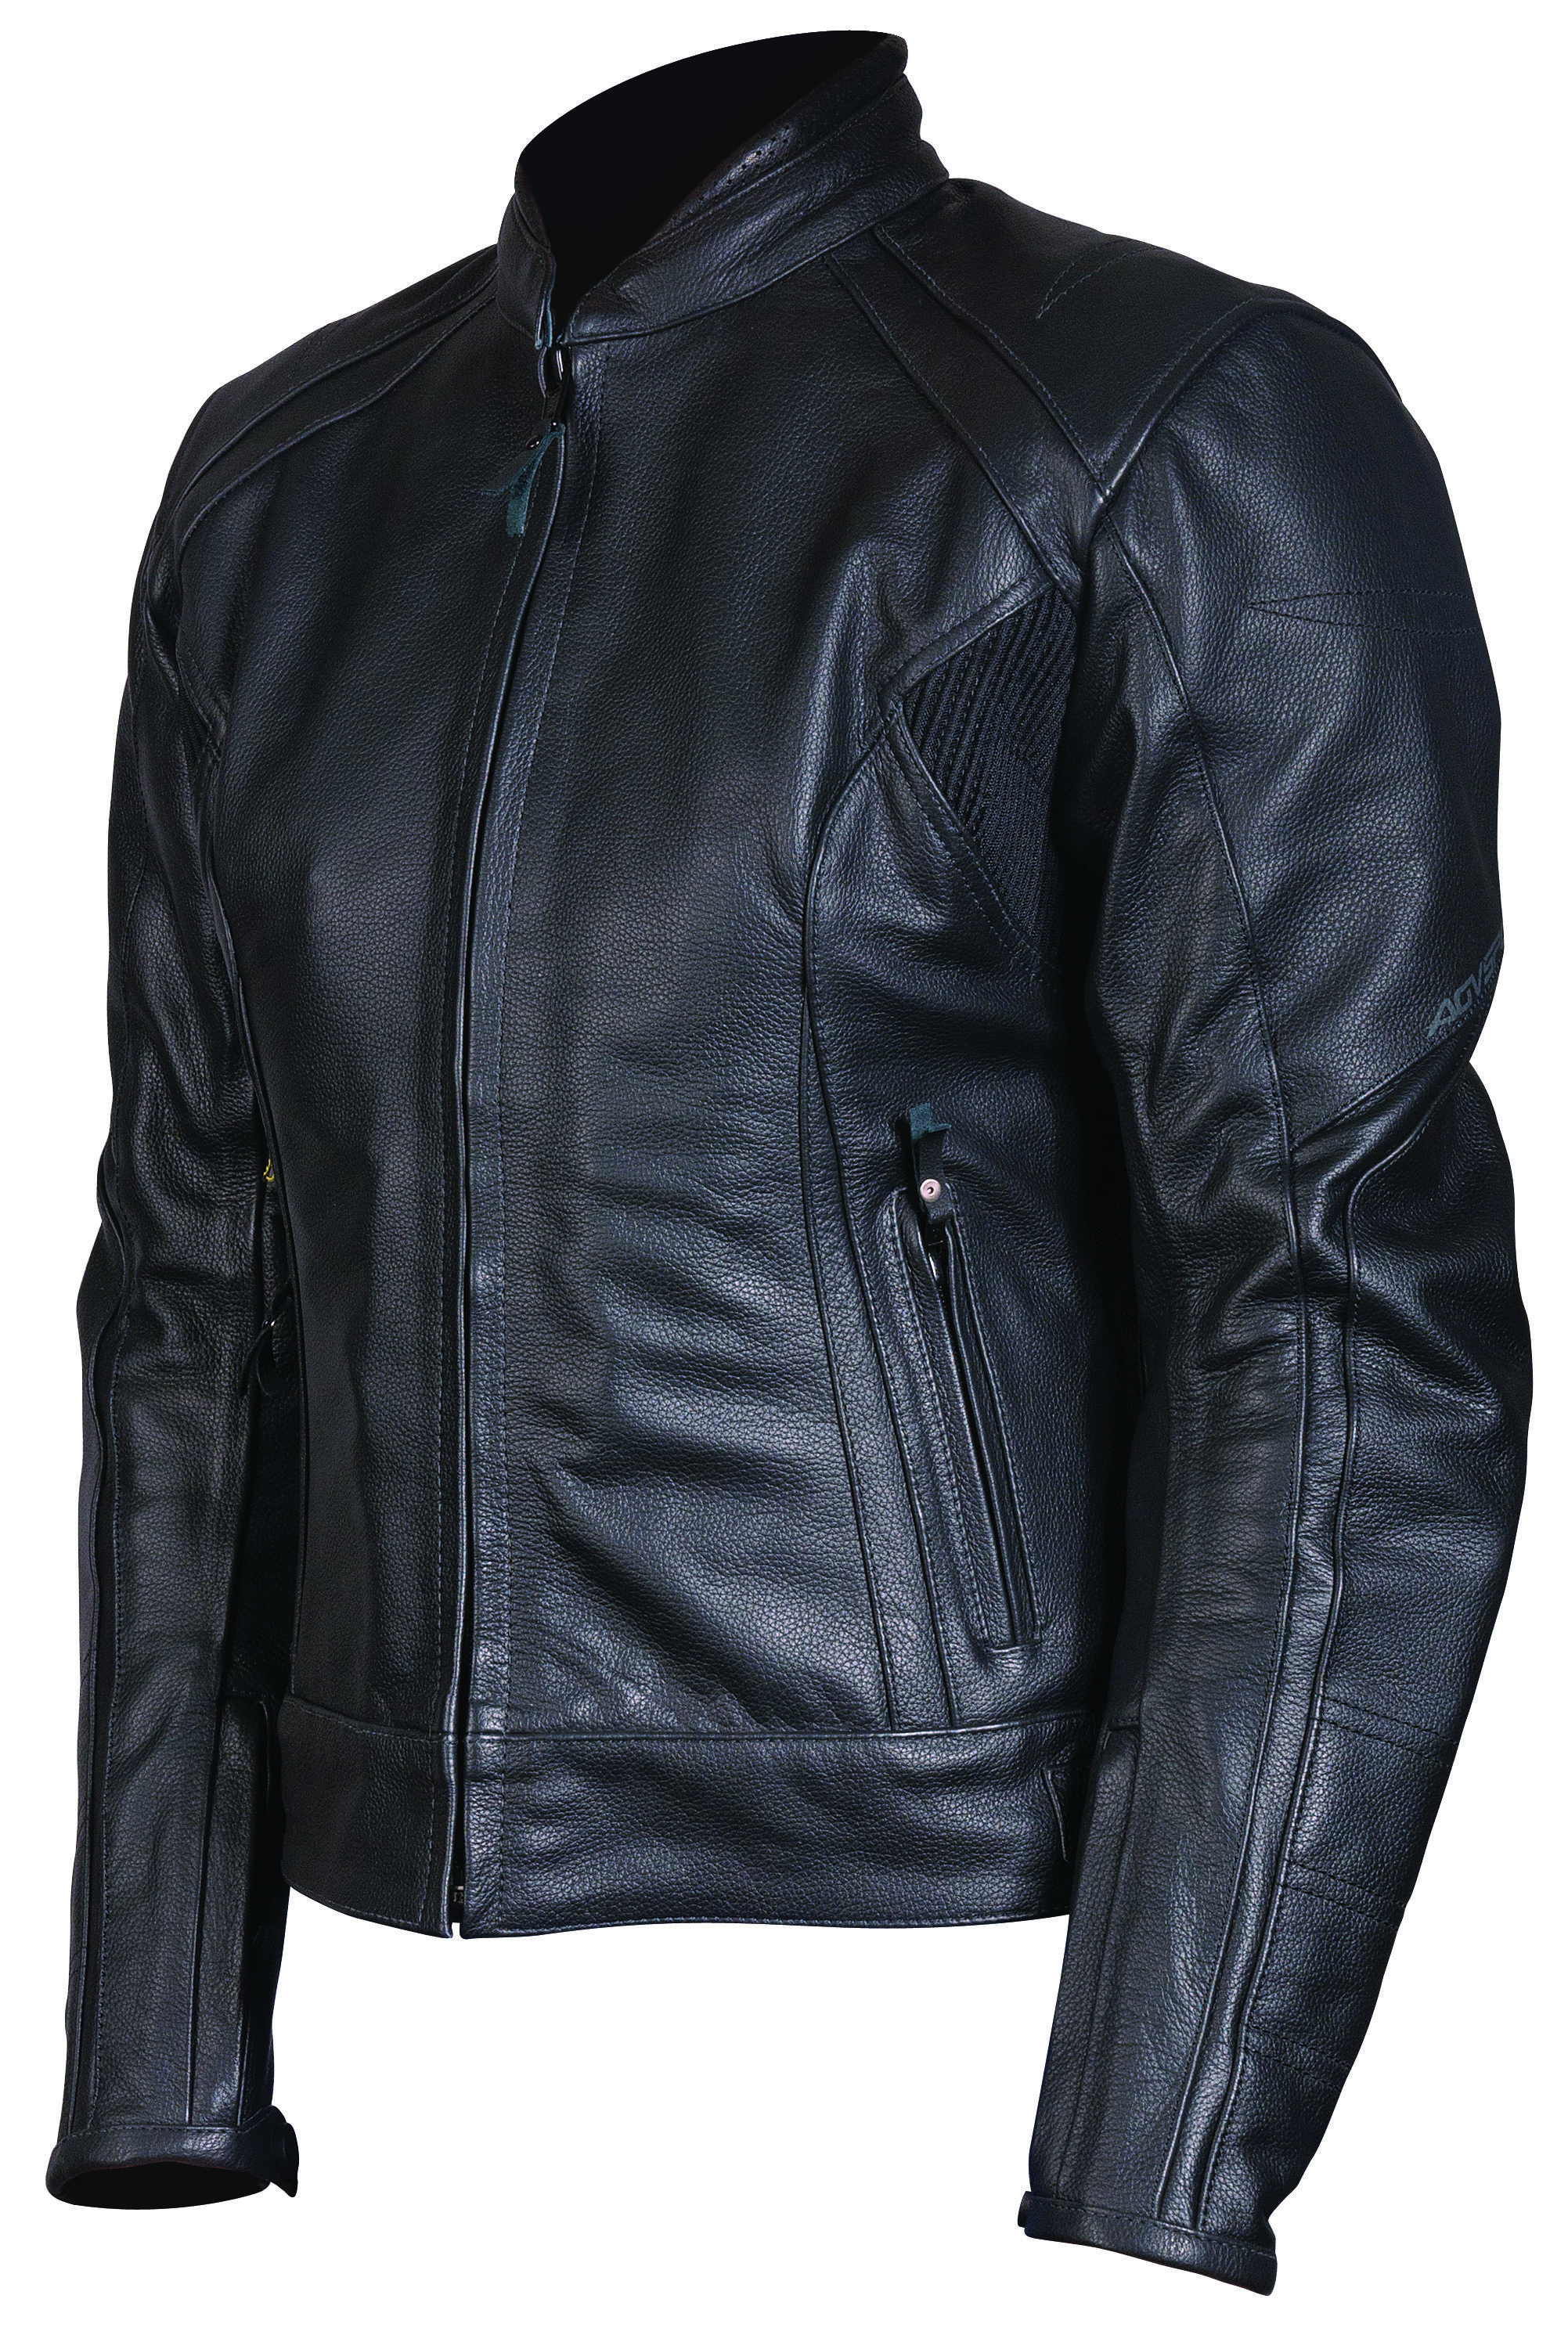 Agvsport Topaz Ladies Leather Jacket Black Made Of 1mm 1 1mm Soft Milled Cowhide In 2020 Motorcycle Jacket Women Womens Black Leather Jacket Leather Jackets Women